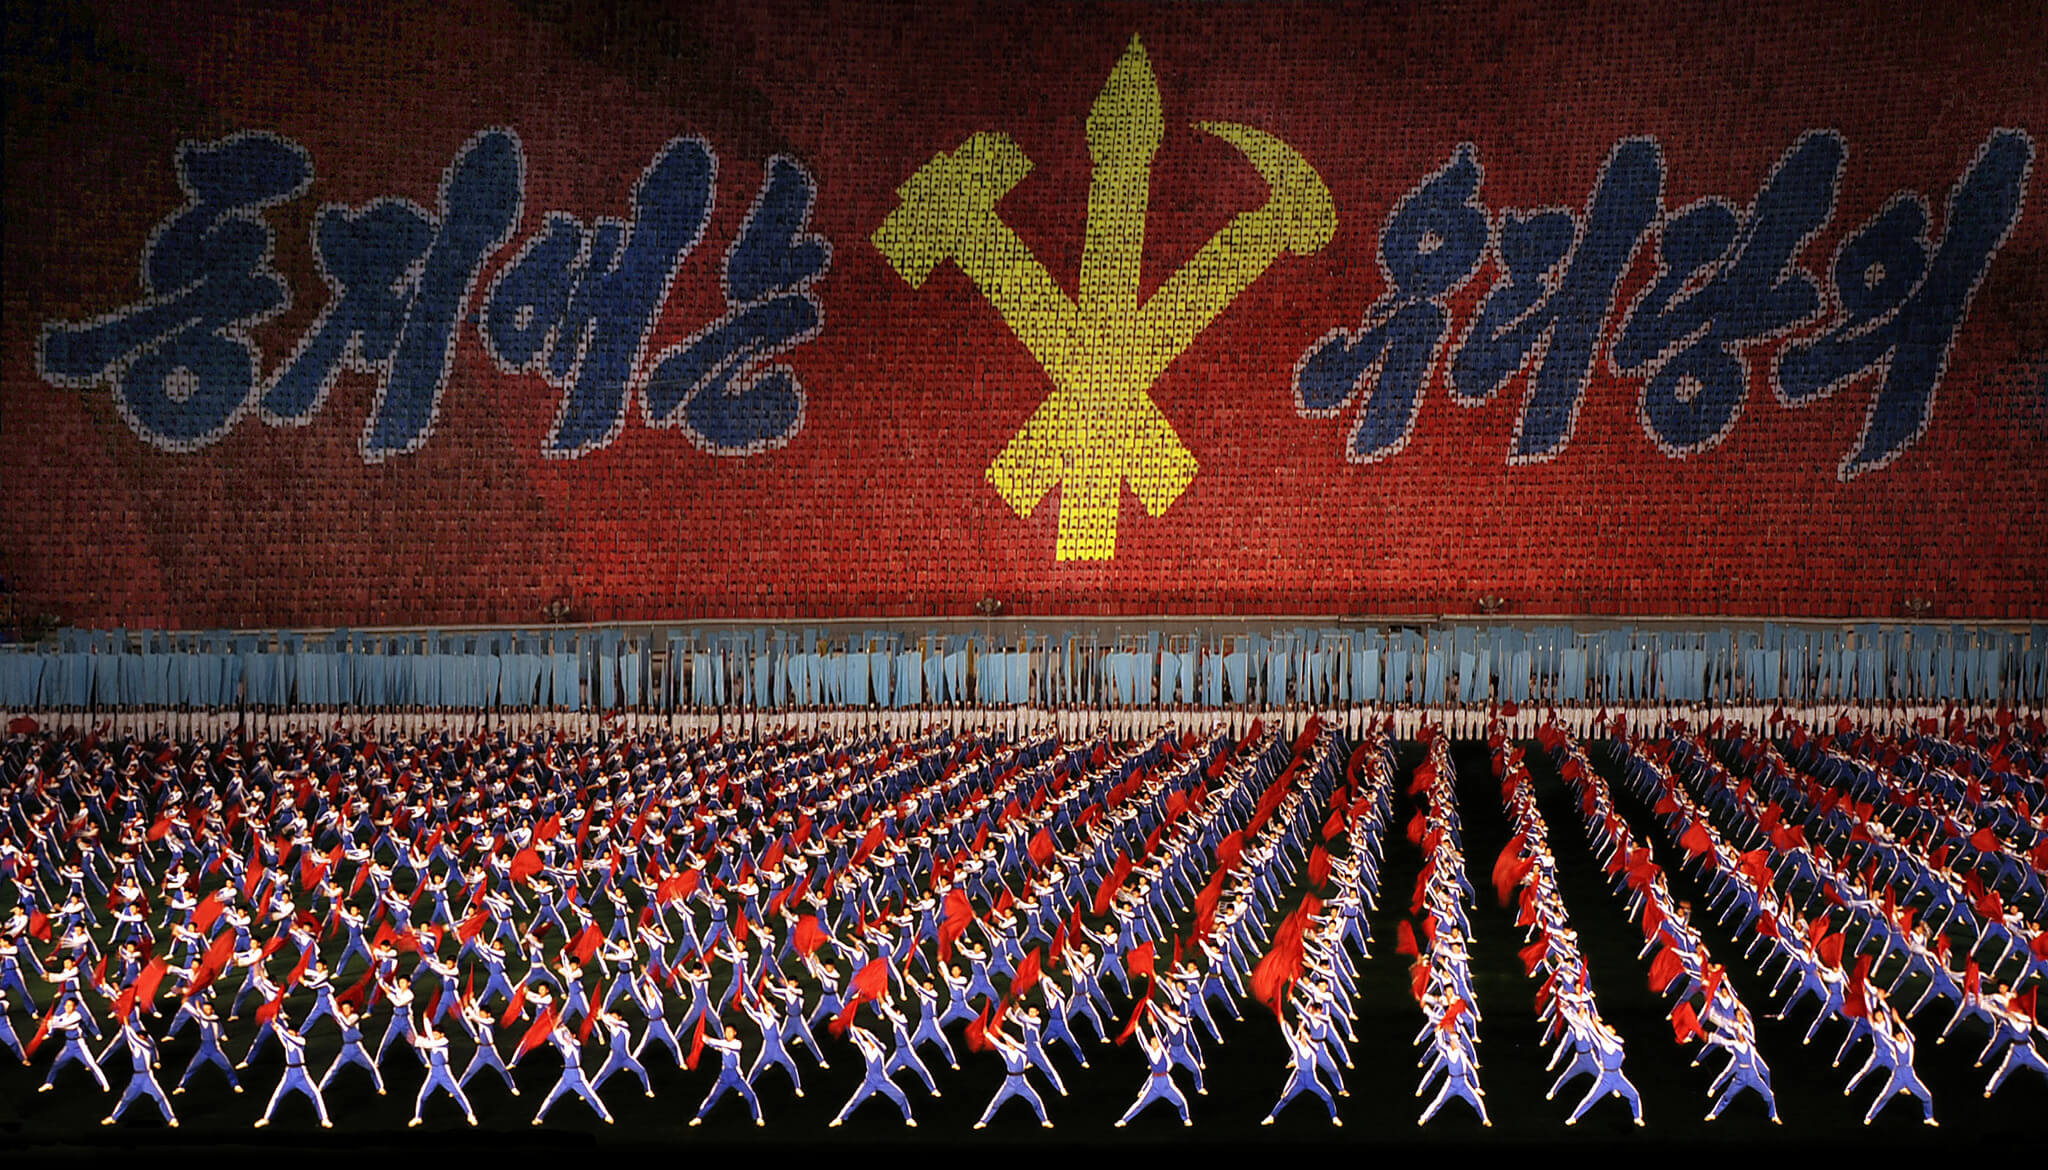 Vogelaar-foto1-Mass games North Korea 2008-Flickr-mister addd